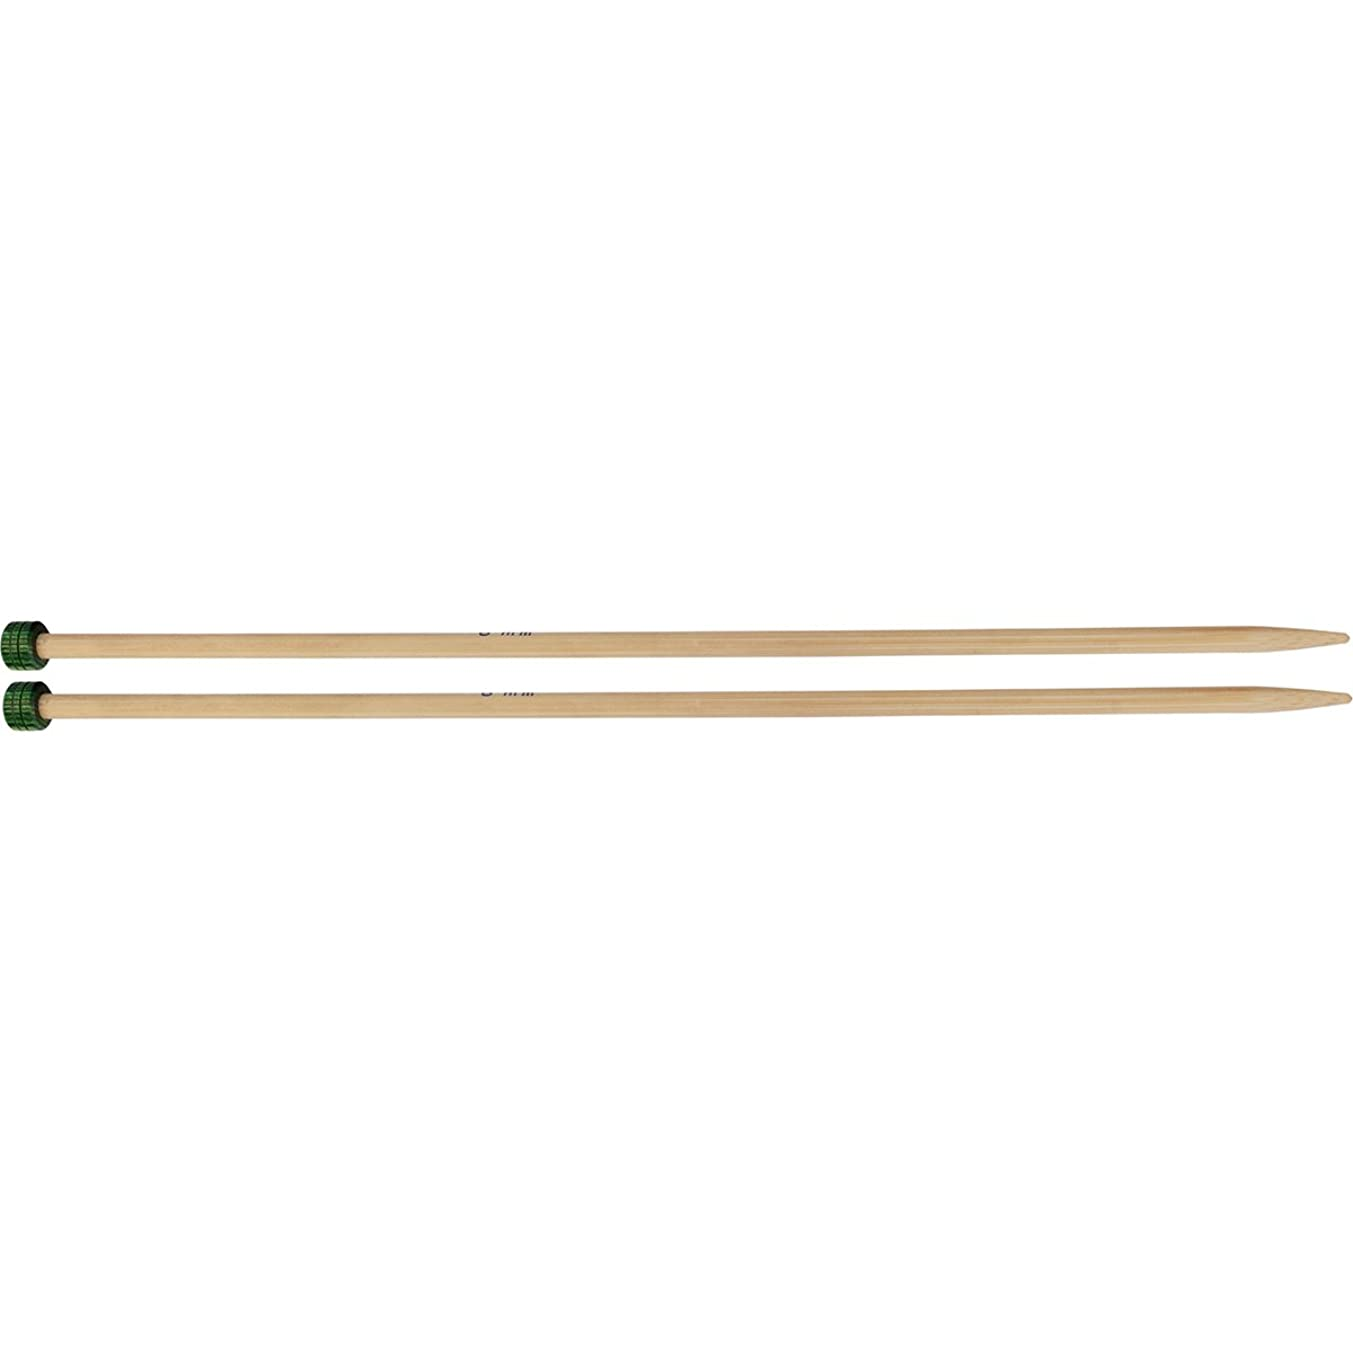 Knitter's Pride 8/5mm Bamboo Single Pointed Needles, 10